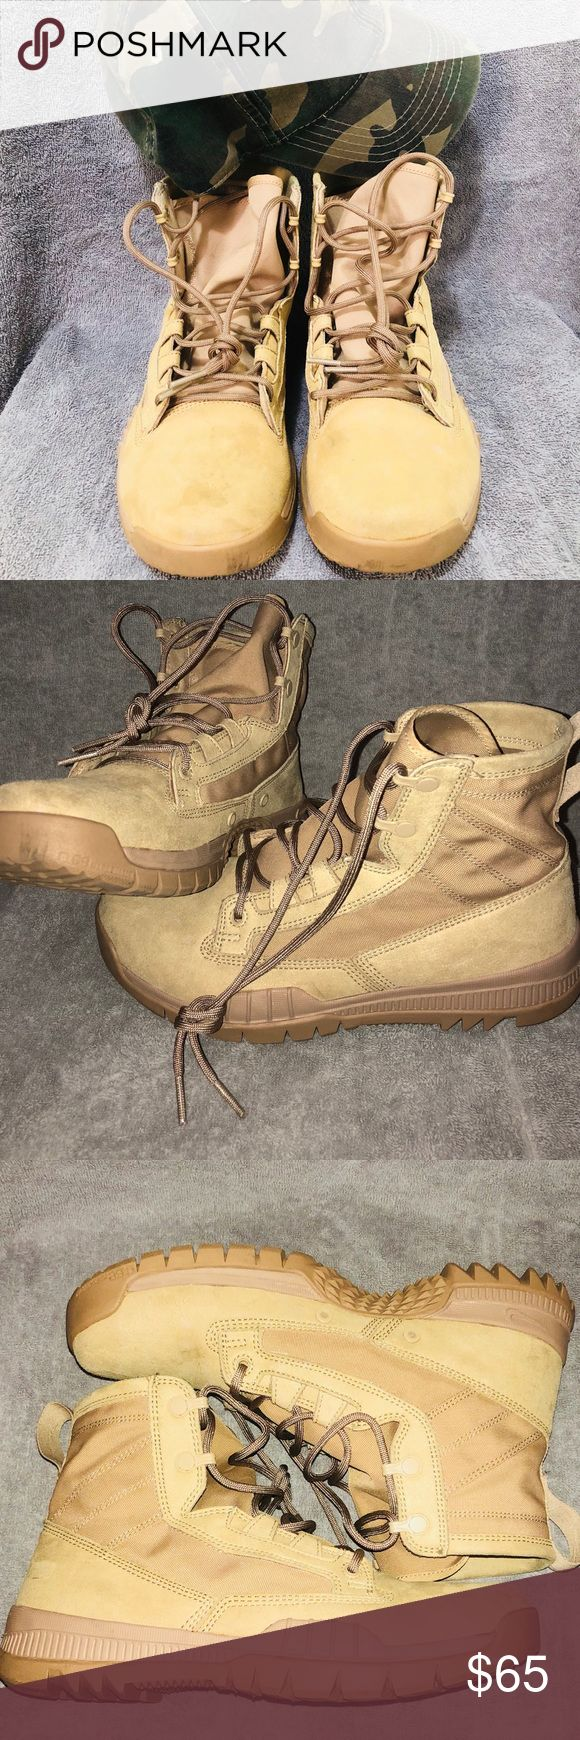 Nike SFB 6 inch Field Boots (Desert Tan) Used Nike Special Field Boots 6 inch Field Boots (Desert Tan) , signs of wear and tear , comfortable shoe, insole and traction of shoe are in good condition , proof and authenticity of shoe purchased at https://uspatriottactical.com/  Able to negotiate price , best offer gets it Will not take returns or trades Nike Shoes Boots